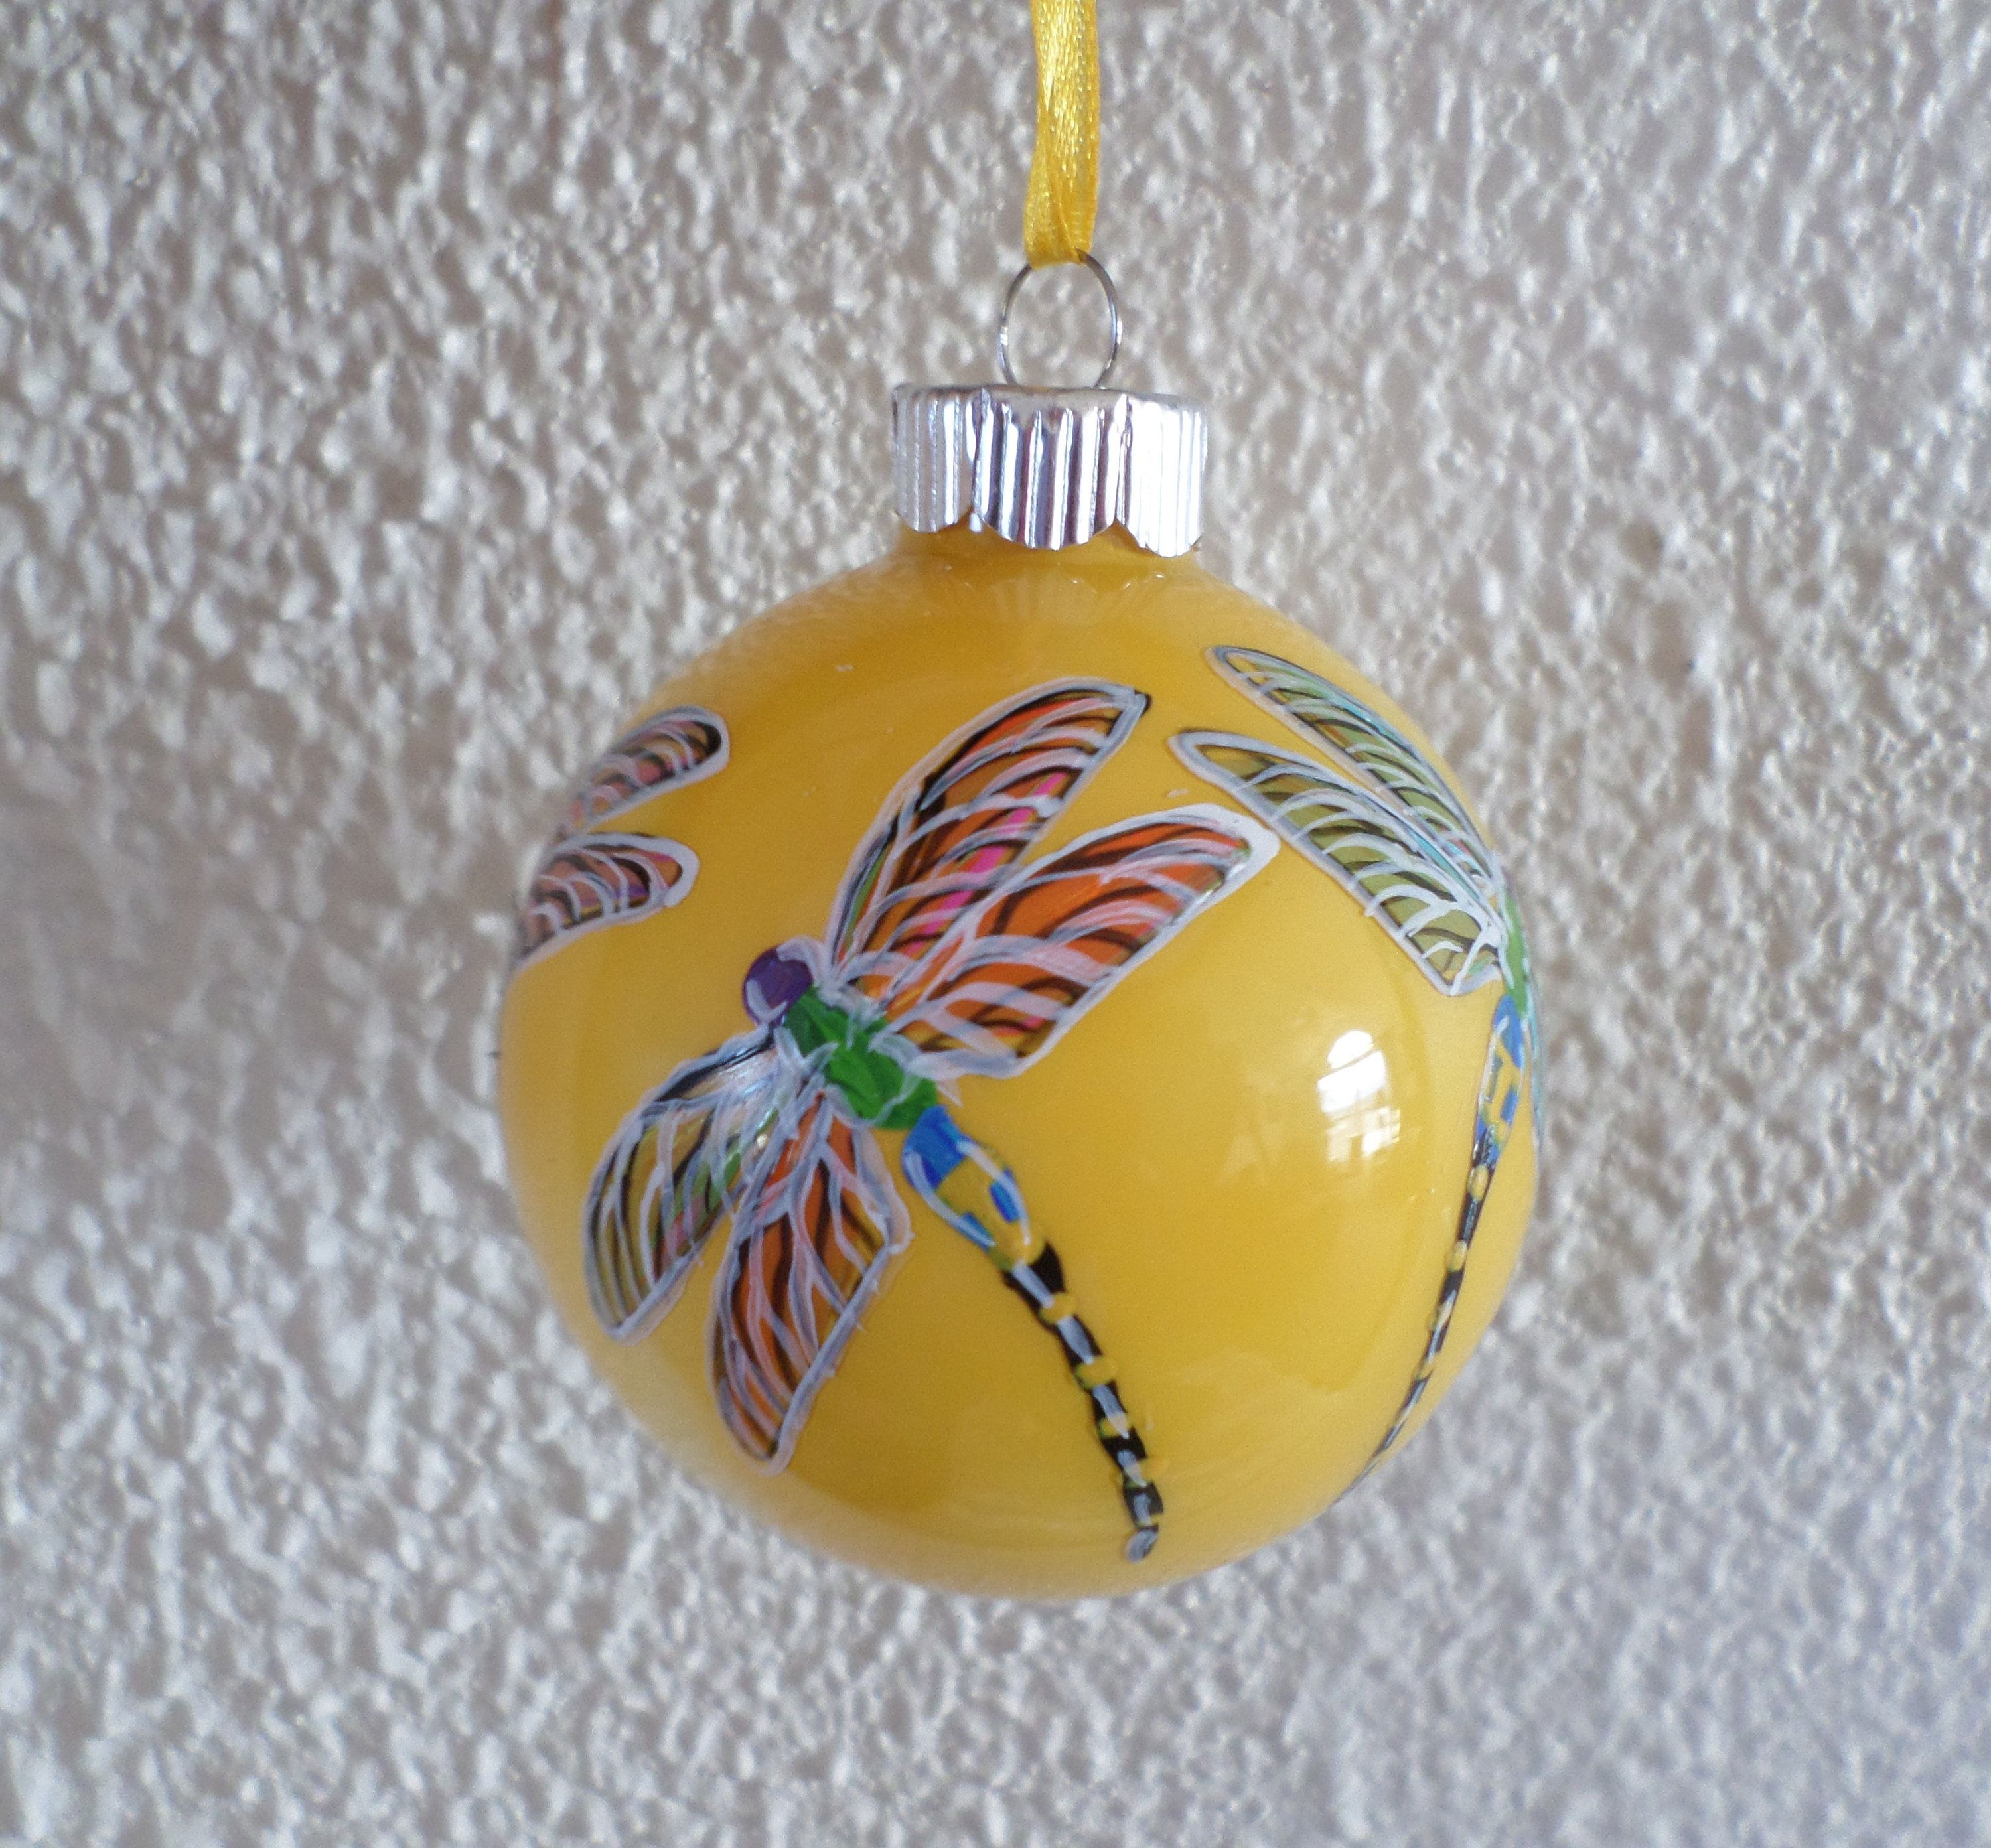 Hand Painted Ornament Yellow Dragonfly Christmas Ornament Dragonfly Gift Painted Ornaments Hand Painted Ornaments Dragonfly Gifts